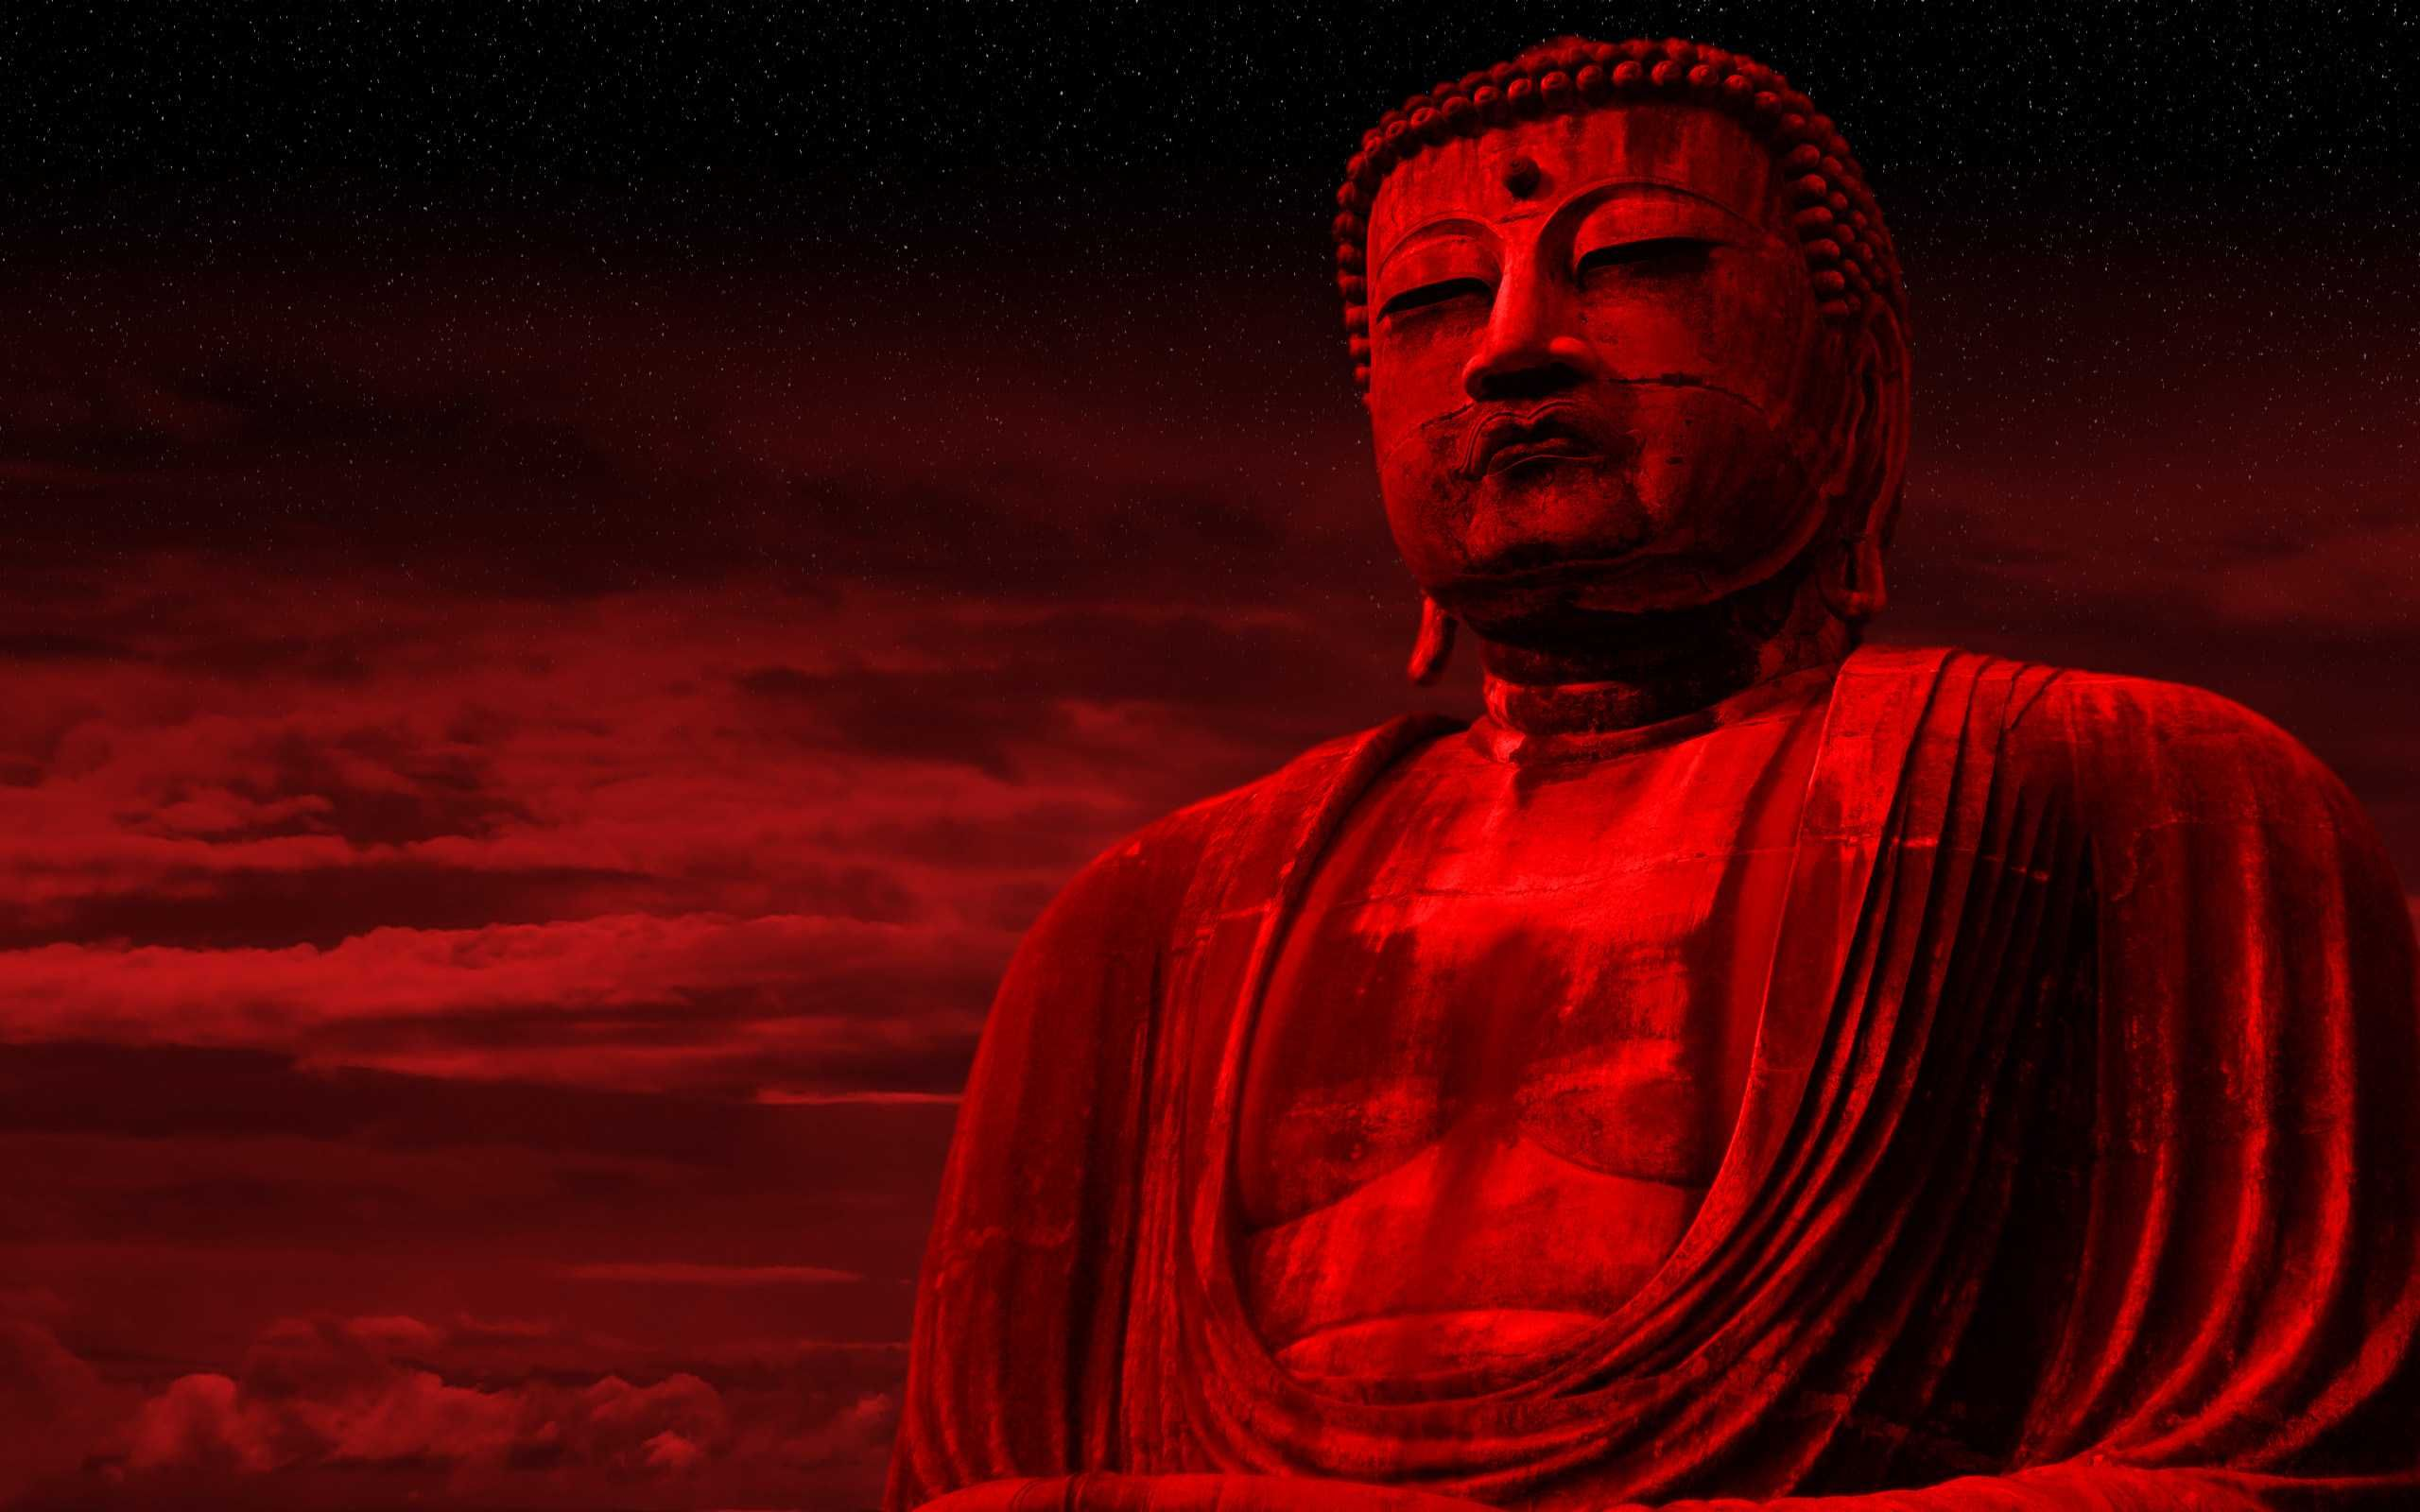 Buddha Wallpaper For Desktop And Mobile In High Resolution Download We Have Best Collection Of Lord Buddh Red And Black Wallpaper Buddha Image Black Wallpaper